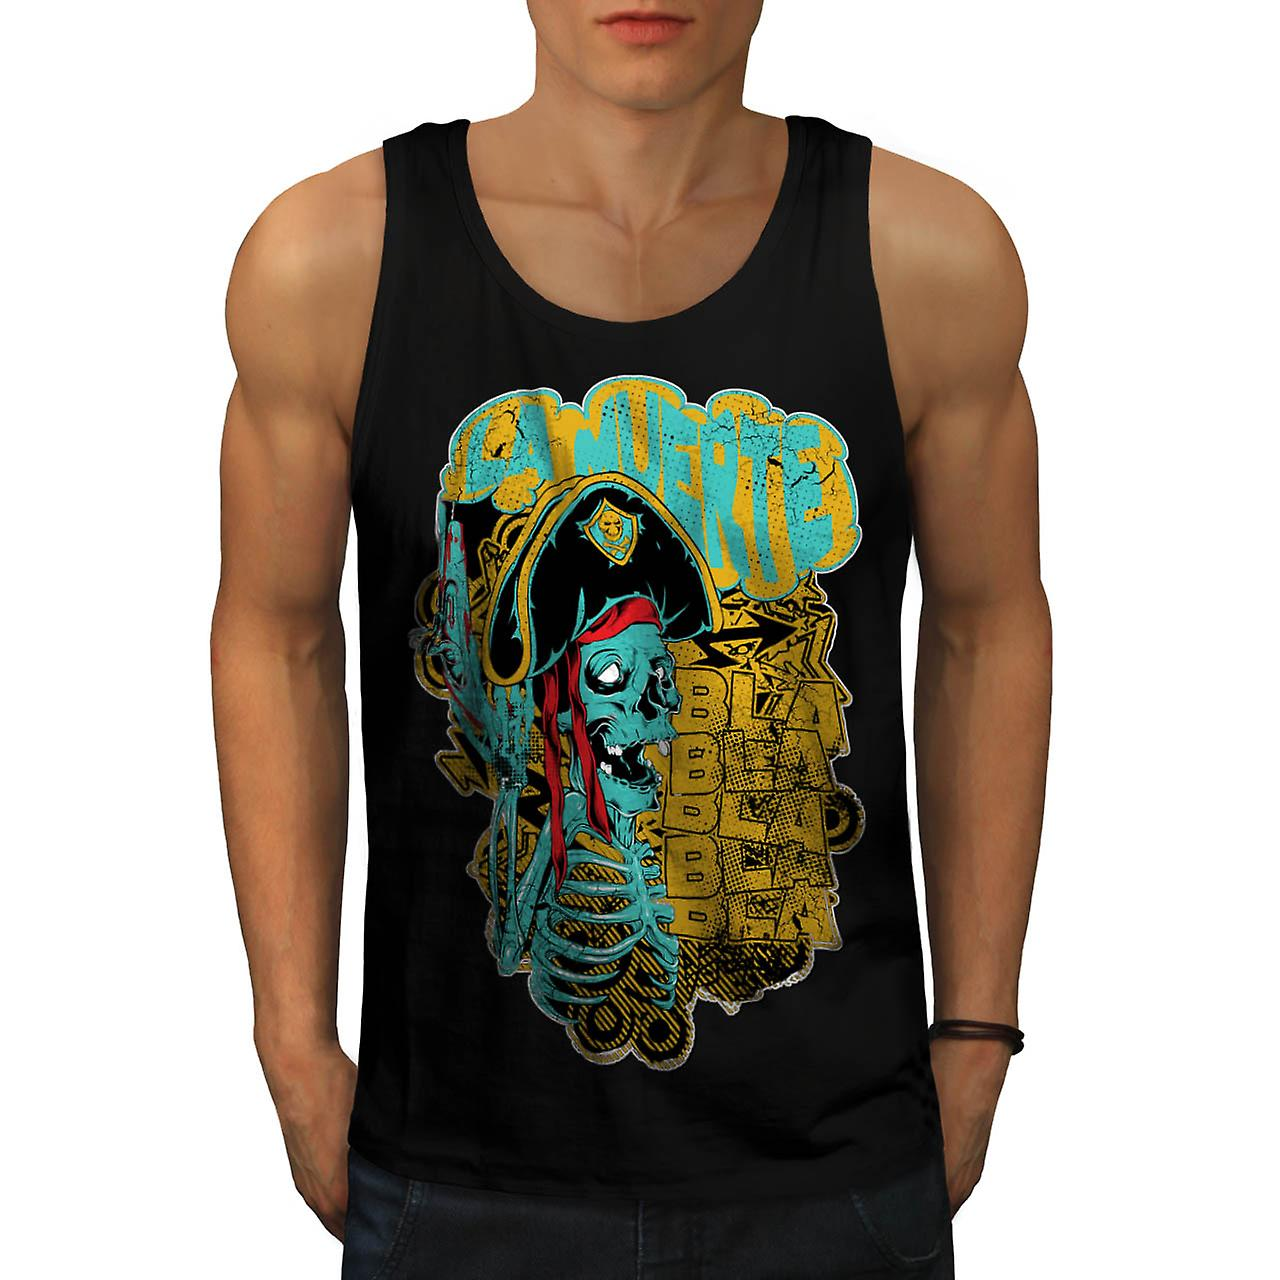 Pirate Skull Ghost gevaar praten mannen Tank Top zwart | Wellcoda